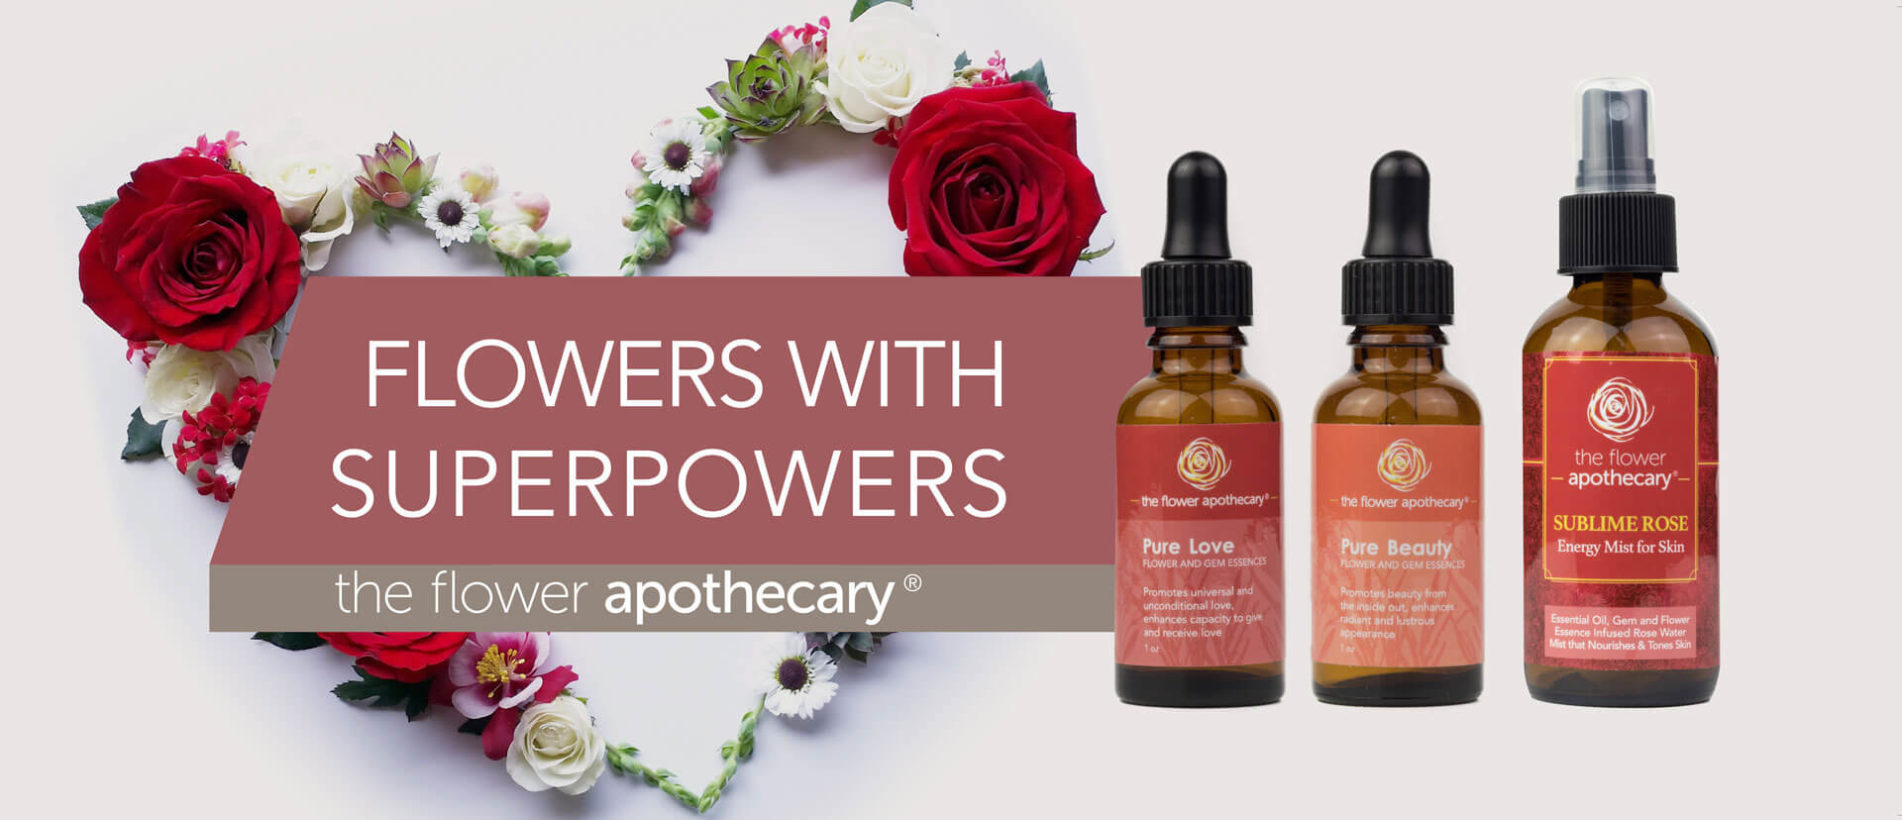 flowers-with-superpowers